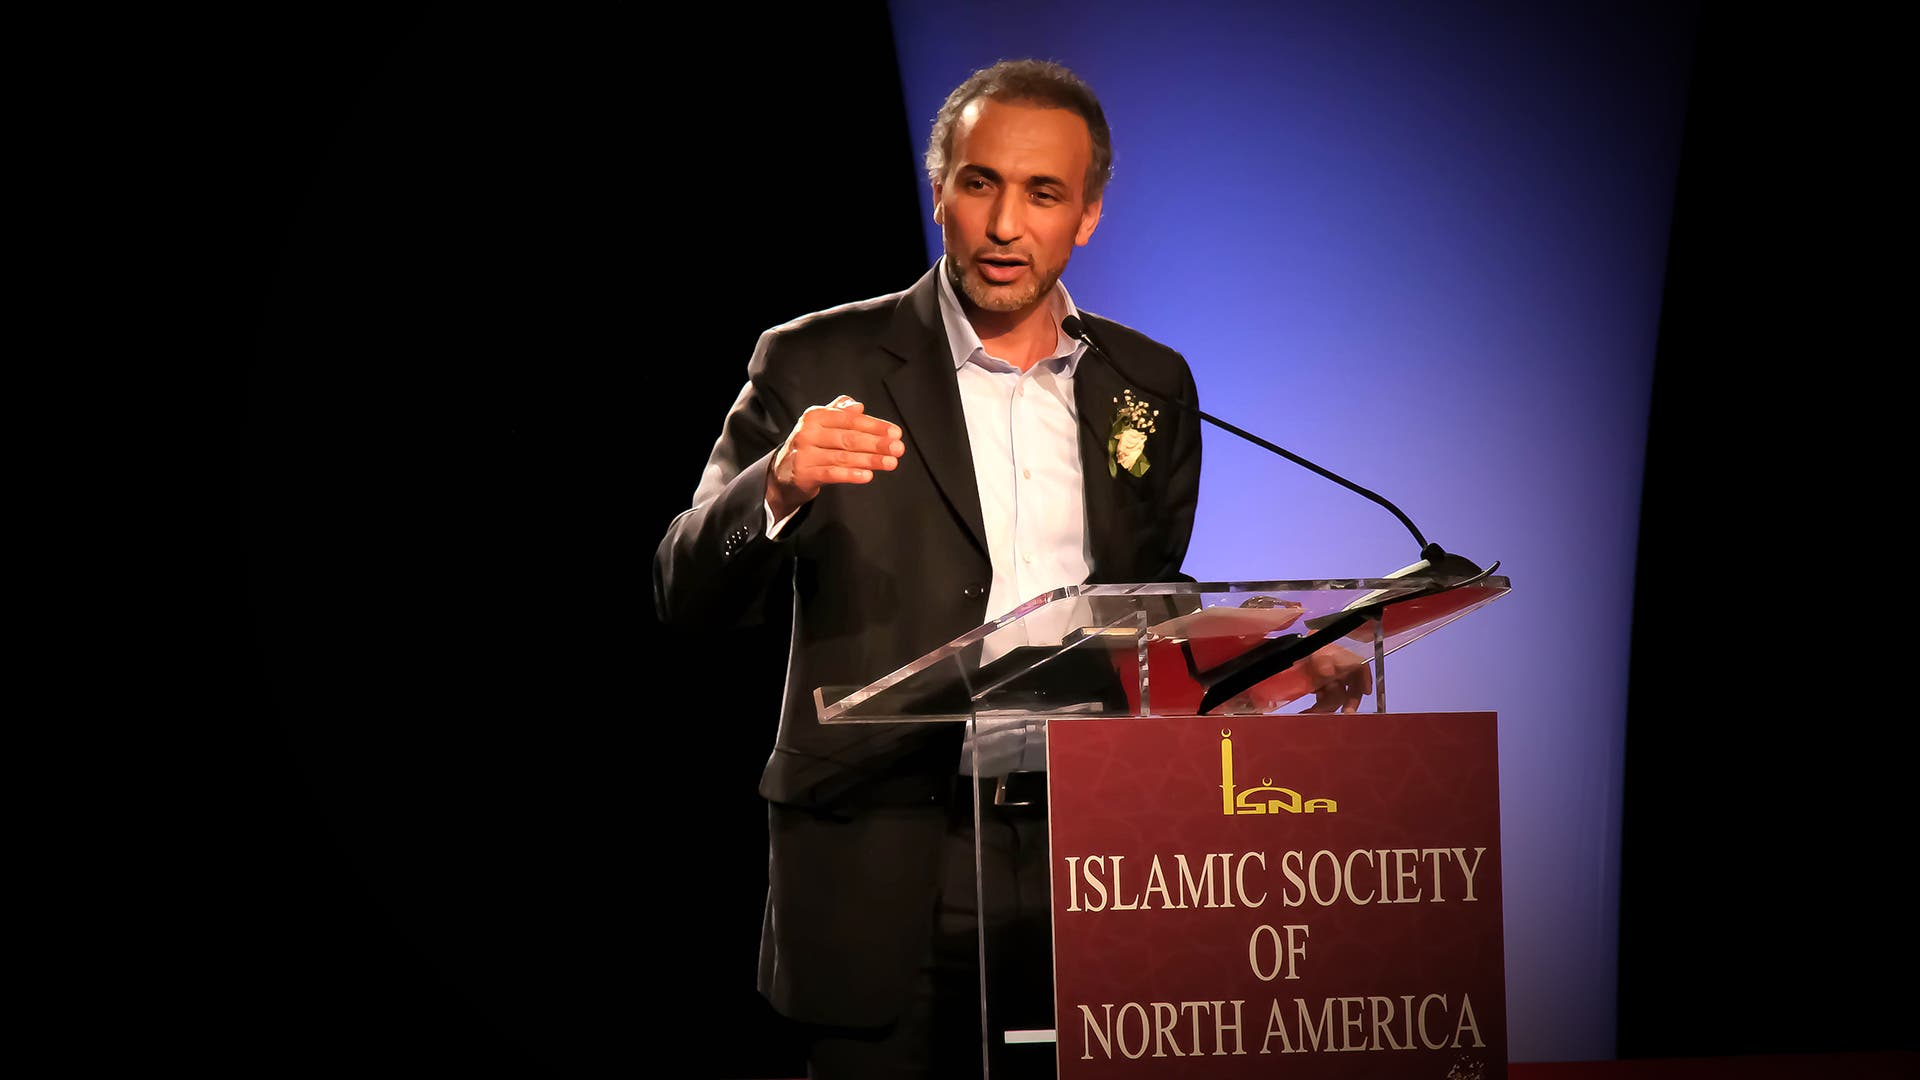 Tariq Ramadan speaking at an event in the United States. (File Photo: flickr/umarnasir)